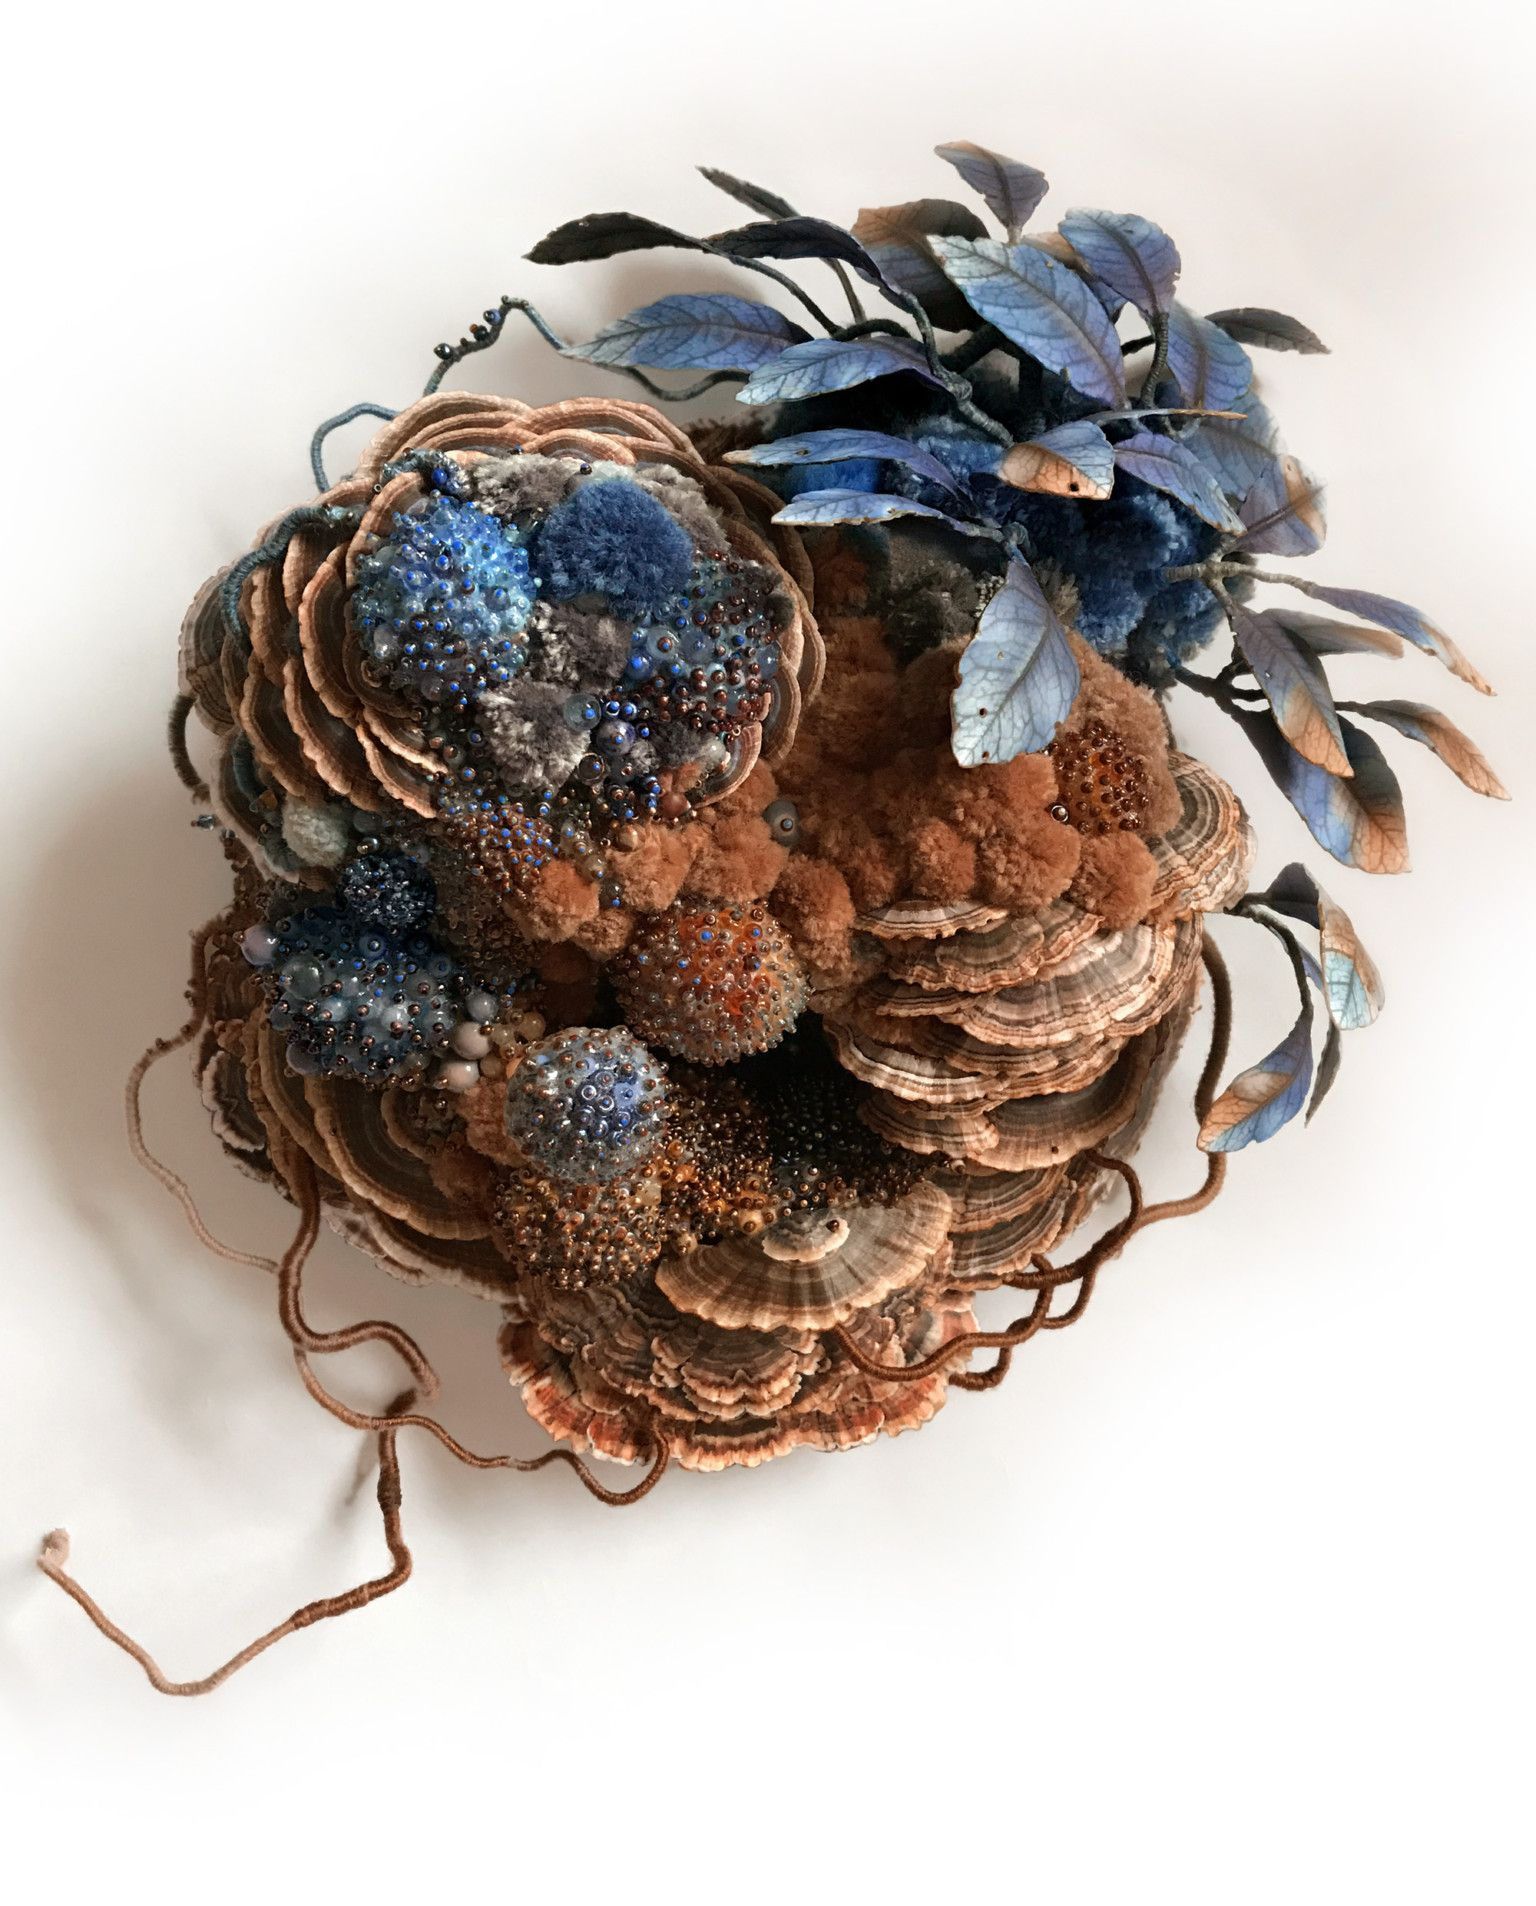 Symbiotic Assemblages By Amy Gross Combine Animals And